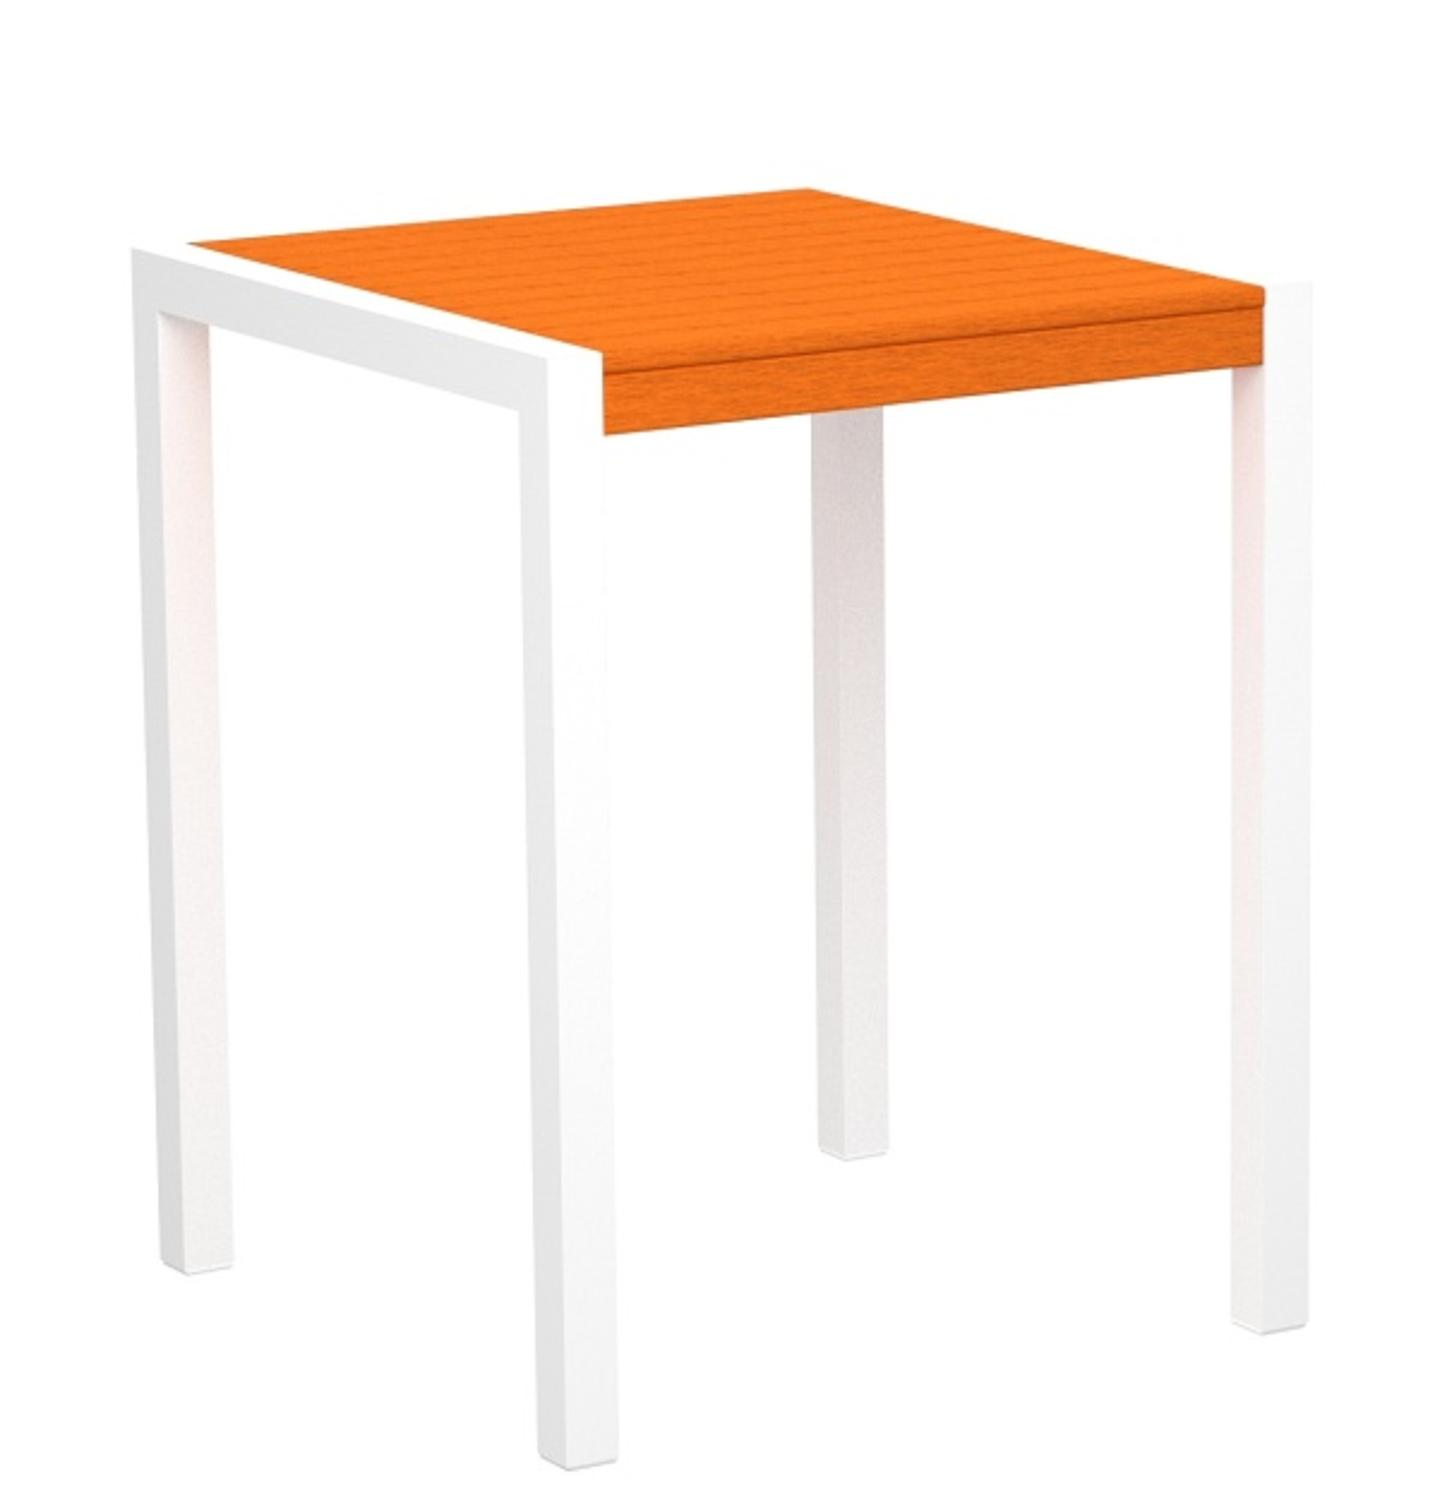 """37"""" Recycled Earth-Friendly Outdoor Counter Table - Tangerine with White Frame"""